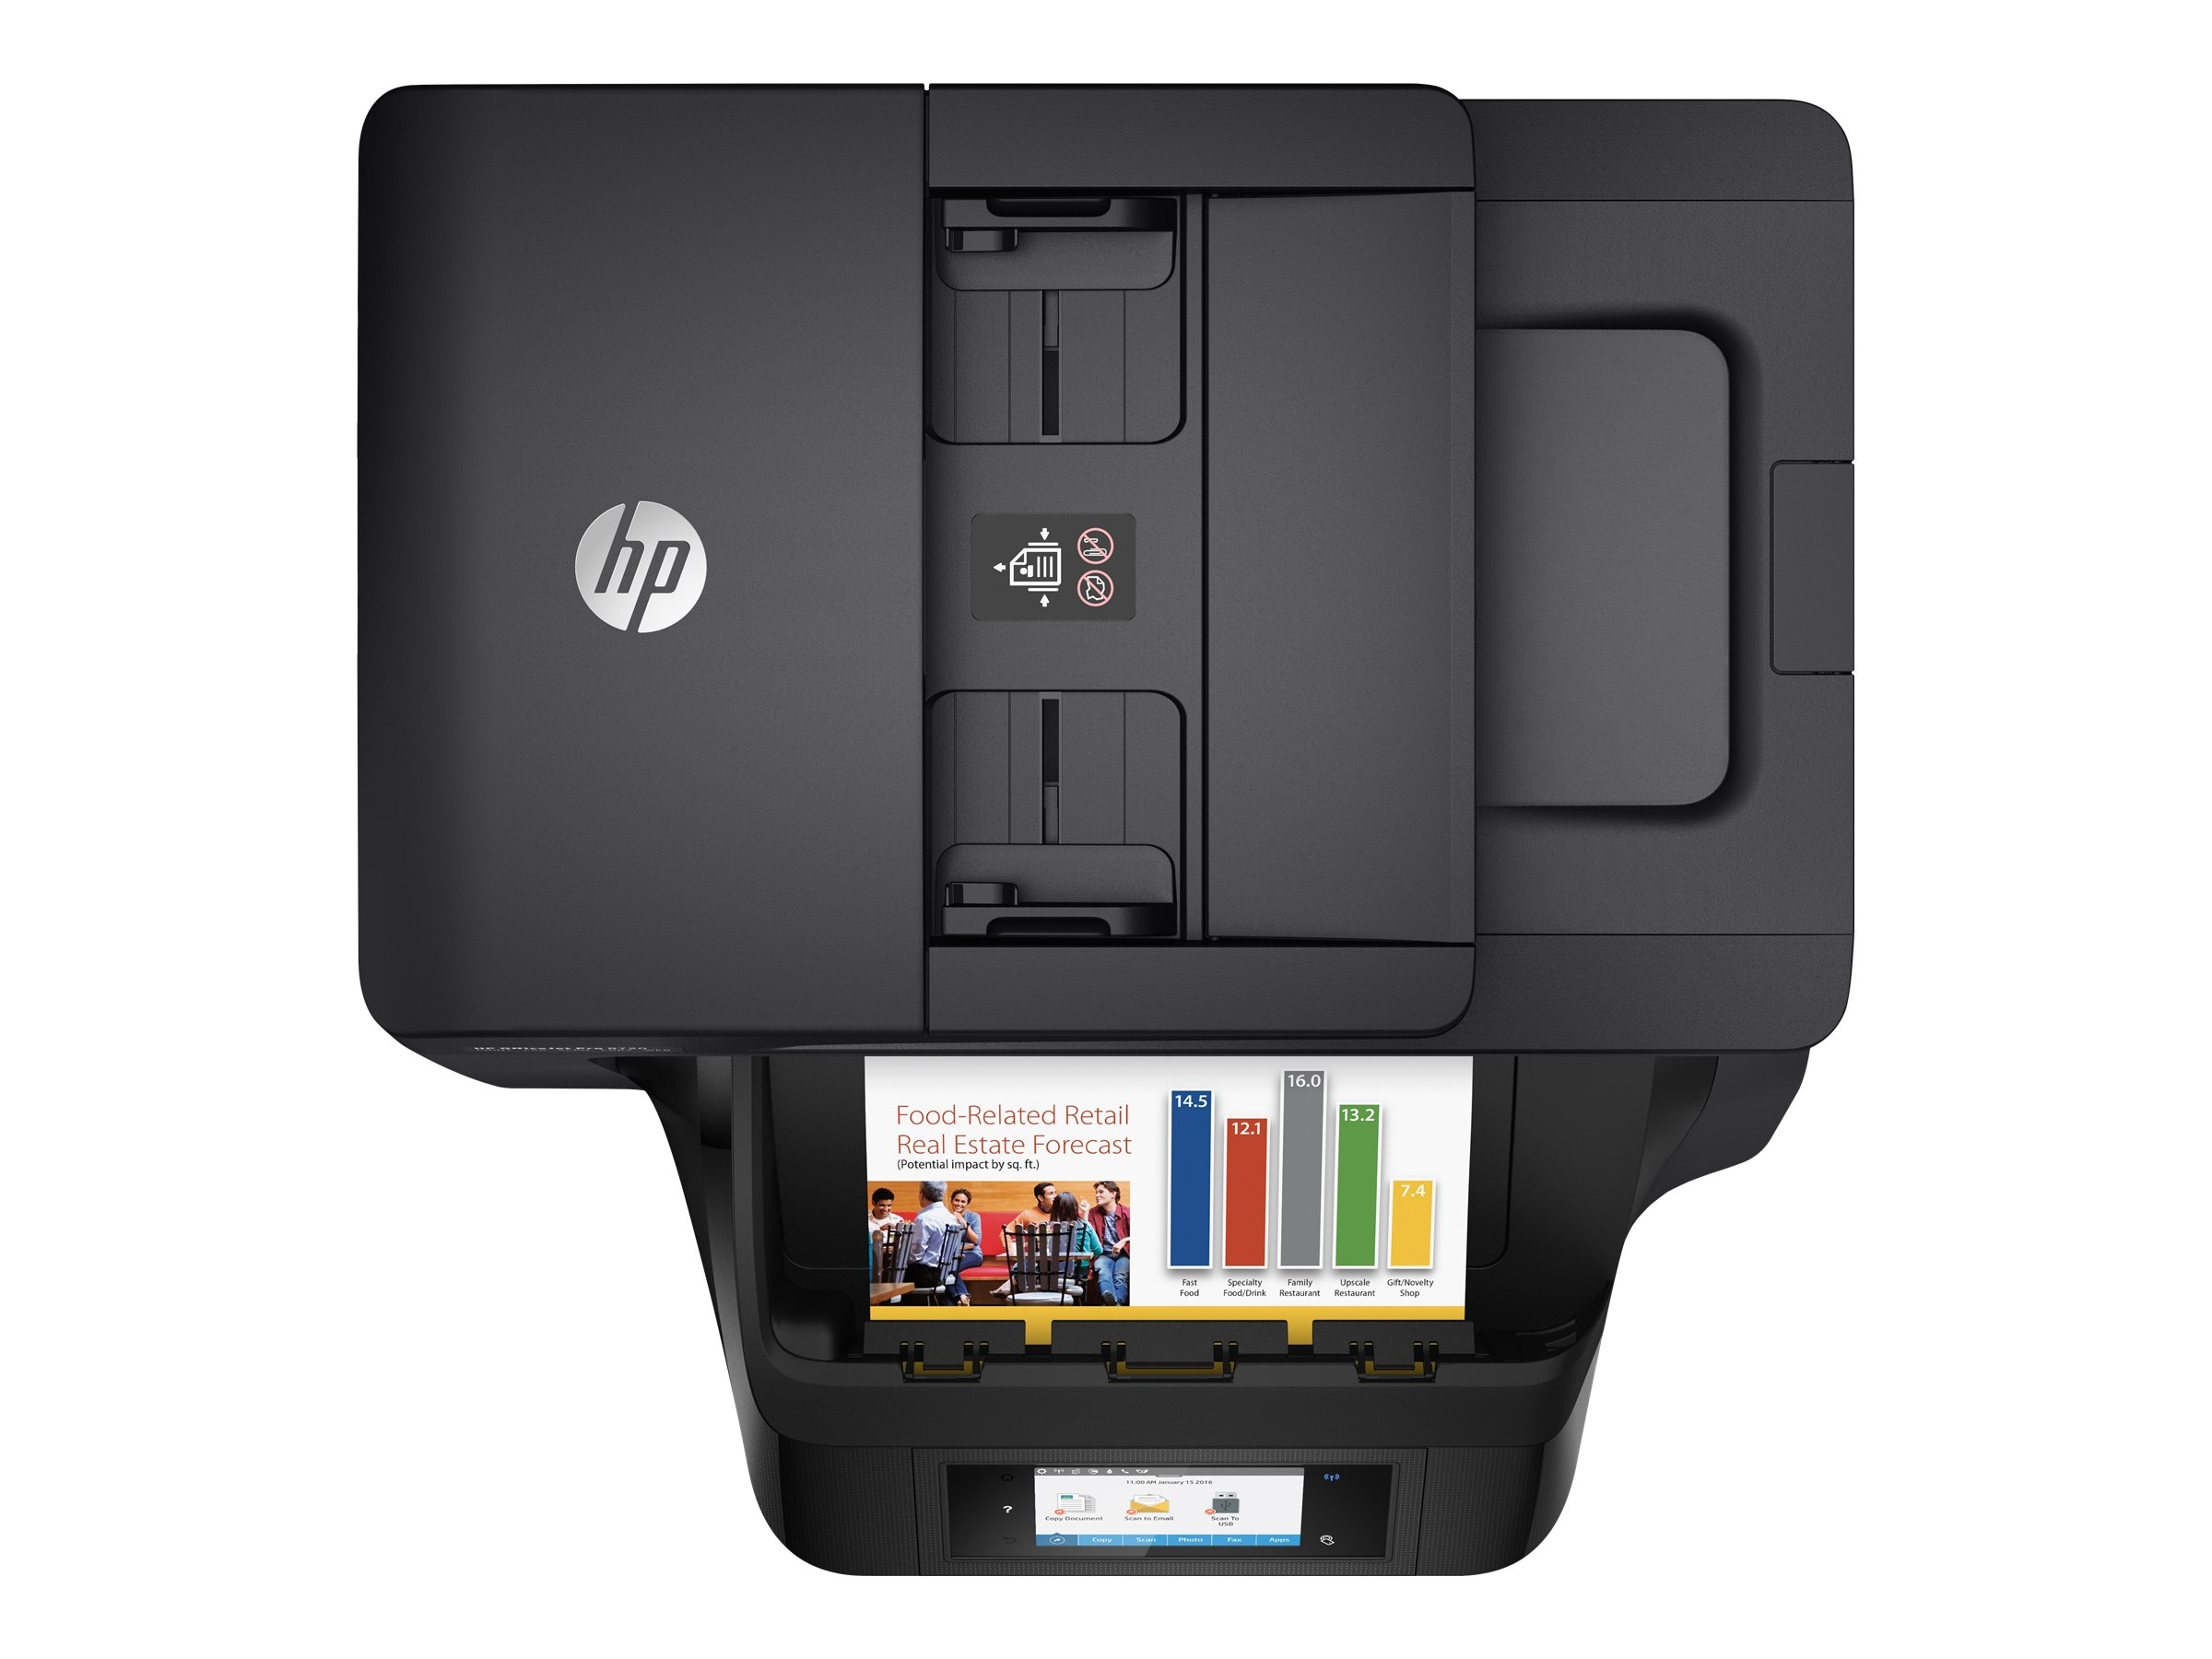 REFURBISHED HP OfficeJet Pro 8720 All-in-One Printer (M9L74AR)